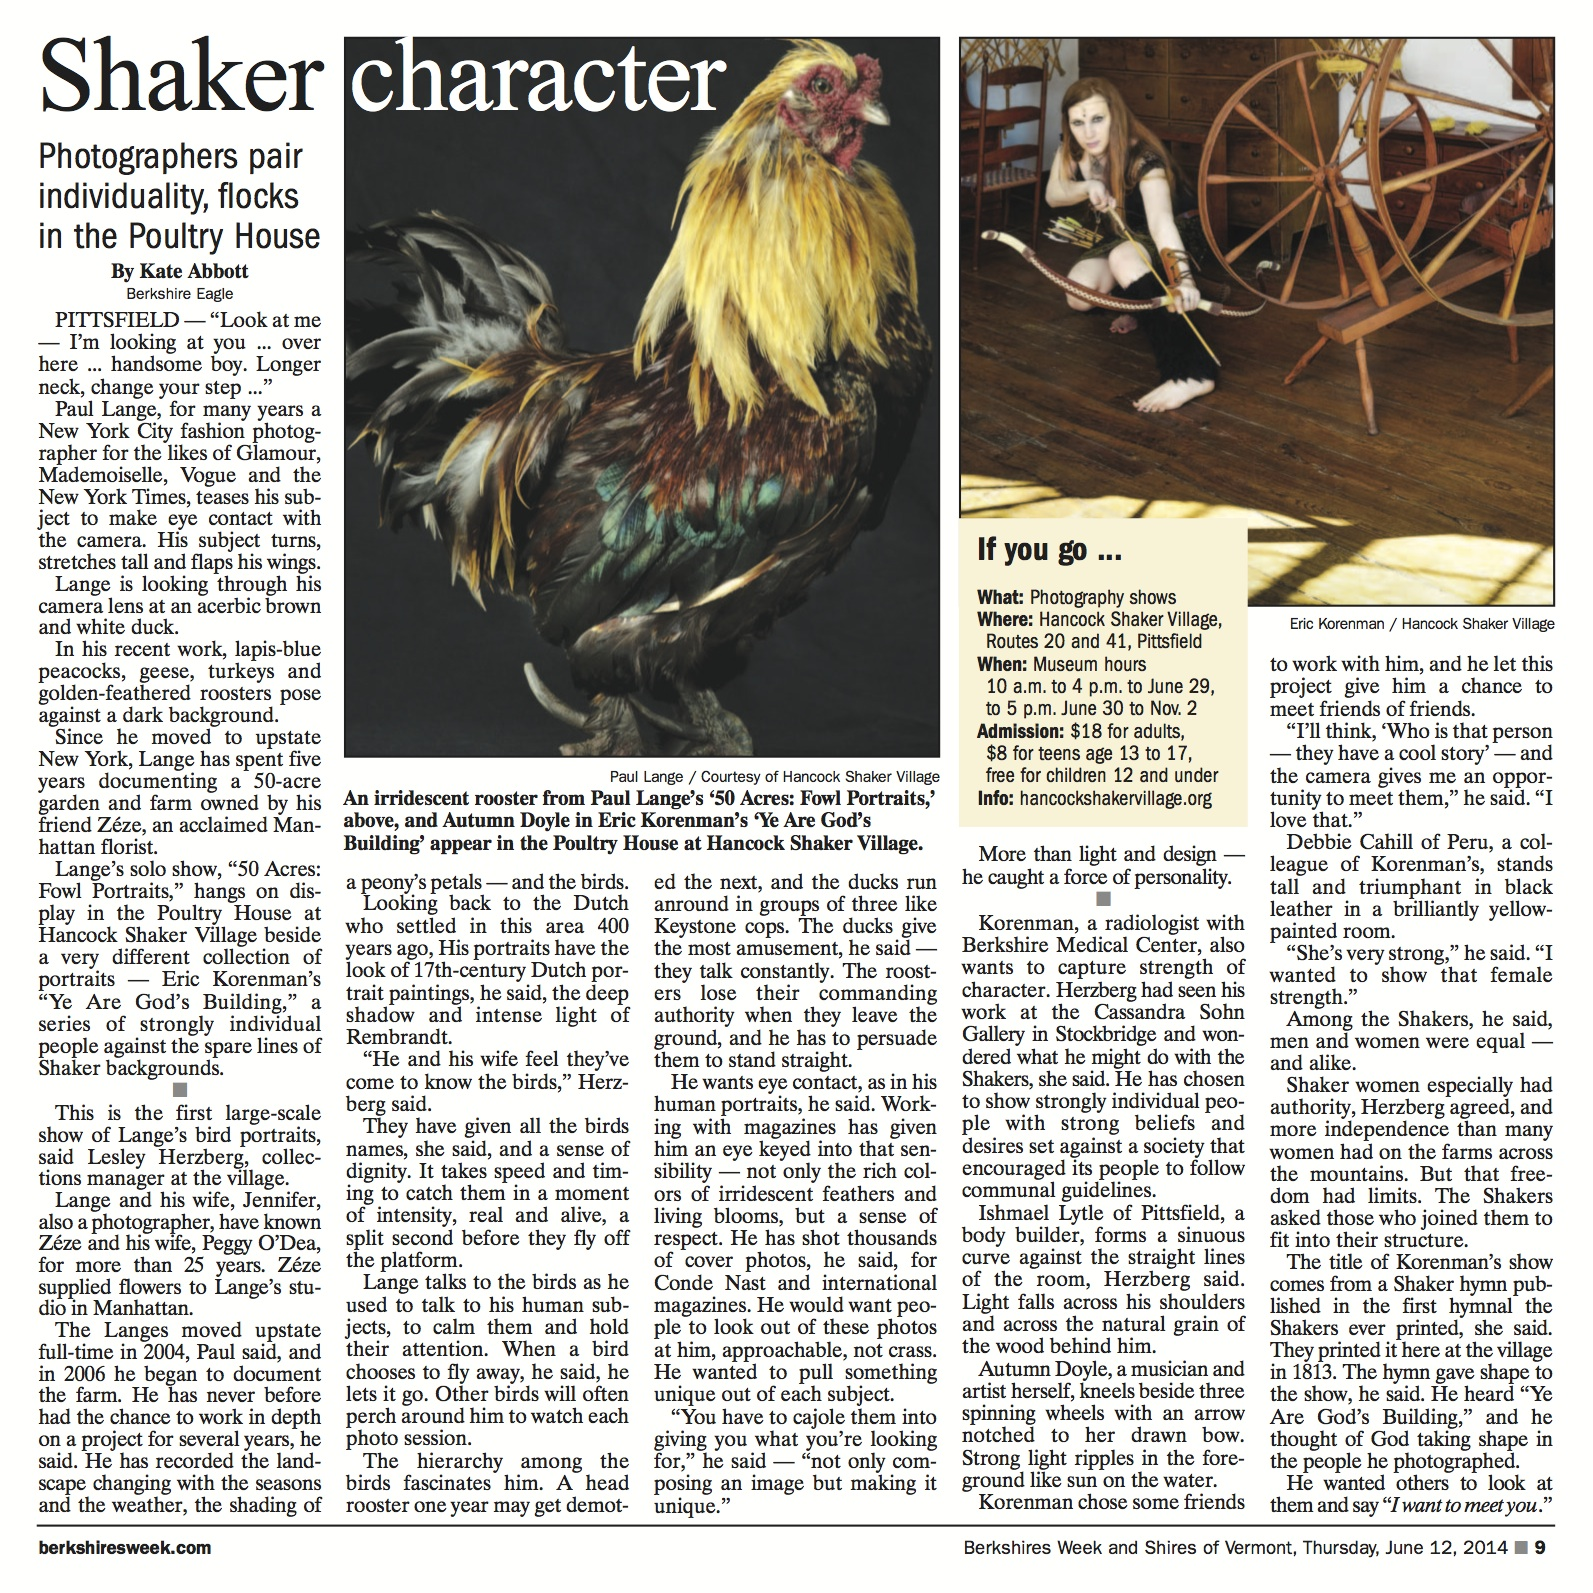 Sample page of Berkshires Week with Hancock Shaker Village story